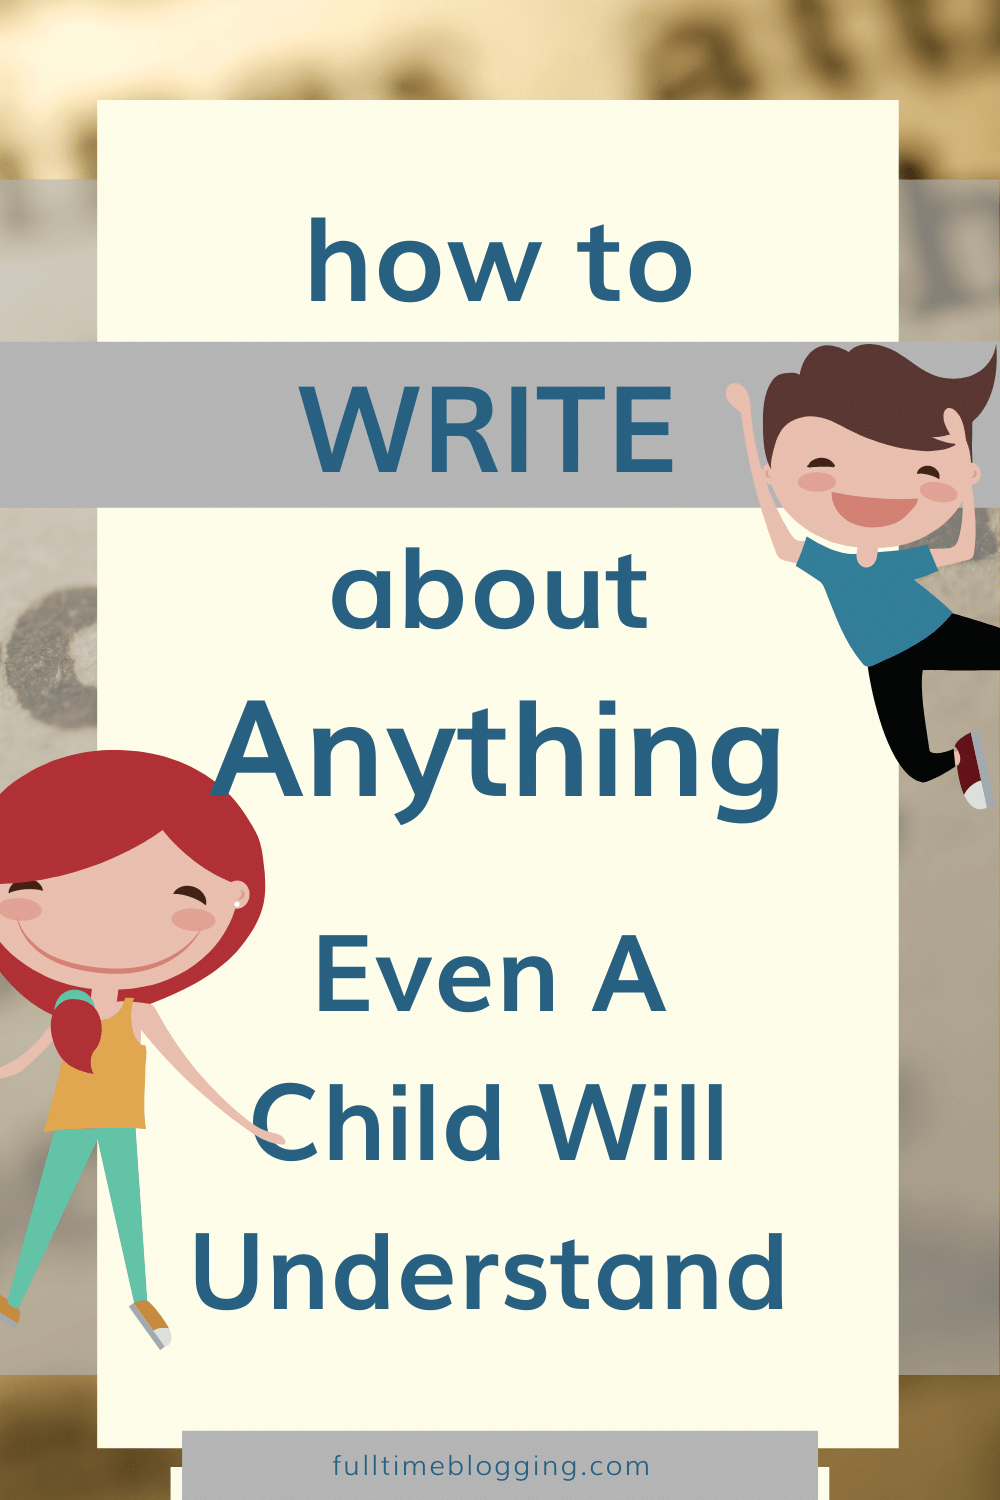 how to write about anything even a child will understand